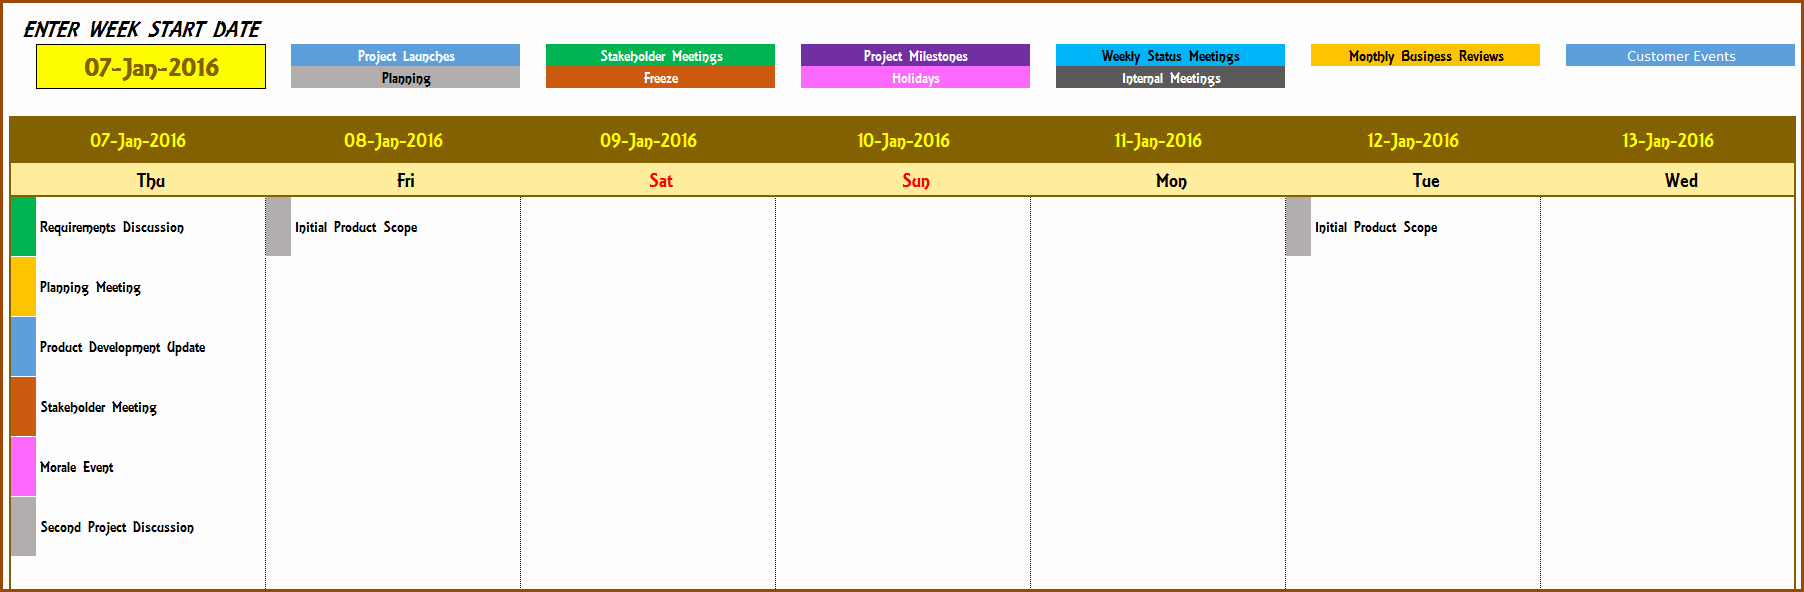 Calendar Of events Template 2015 Fresh event Calendar Maker Excel Template V3 Support